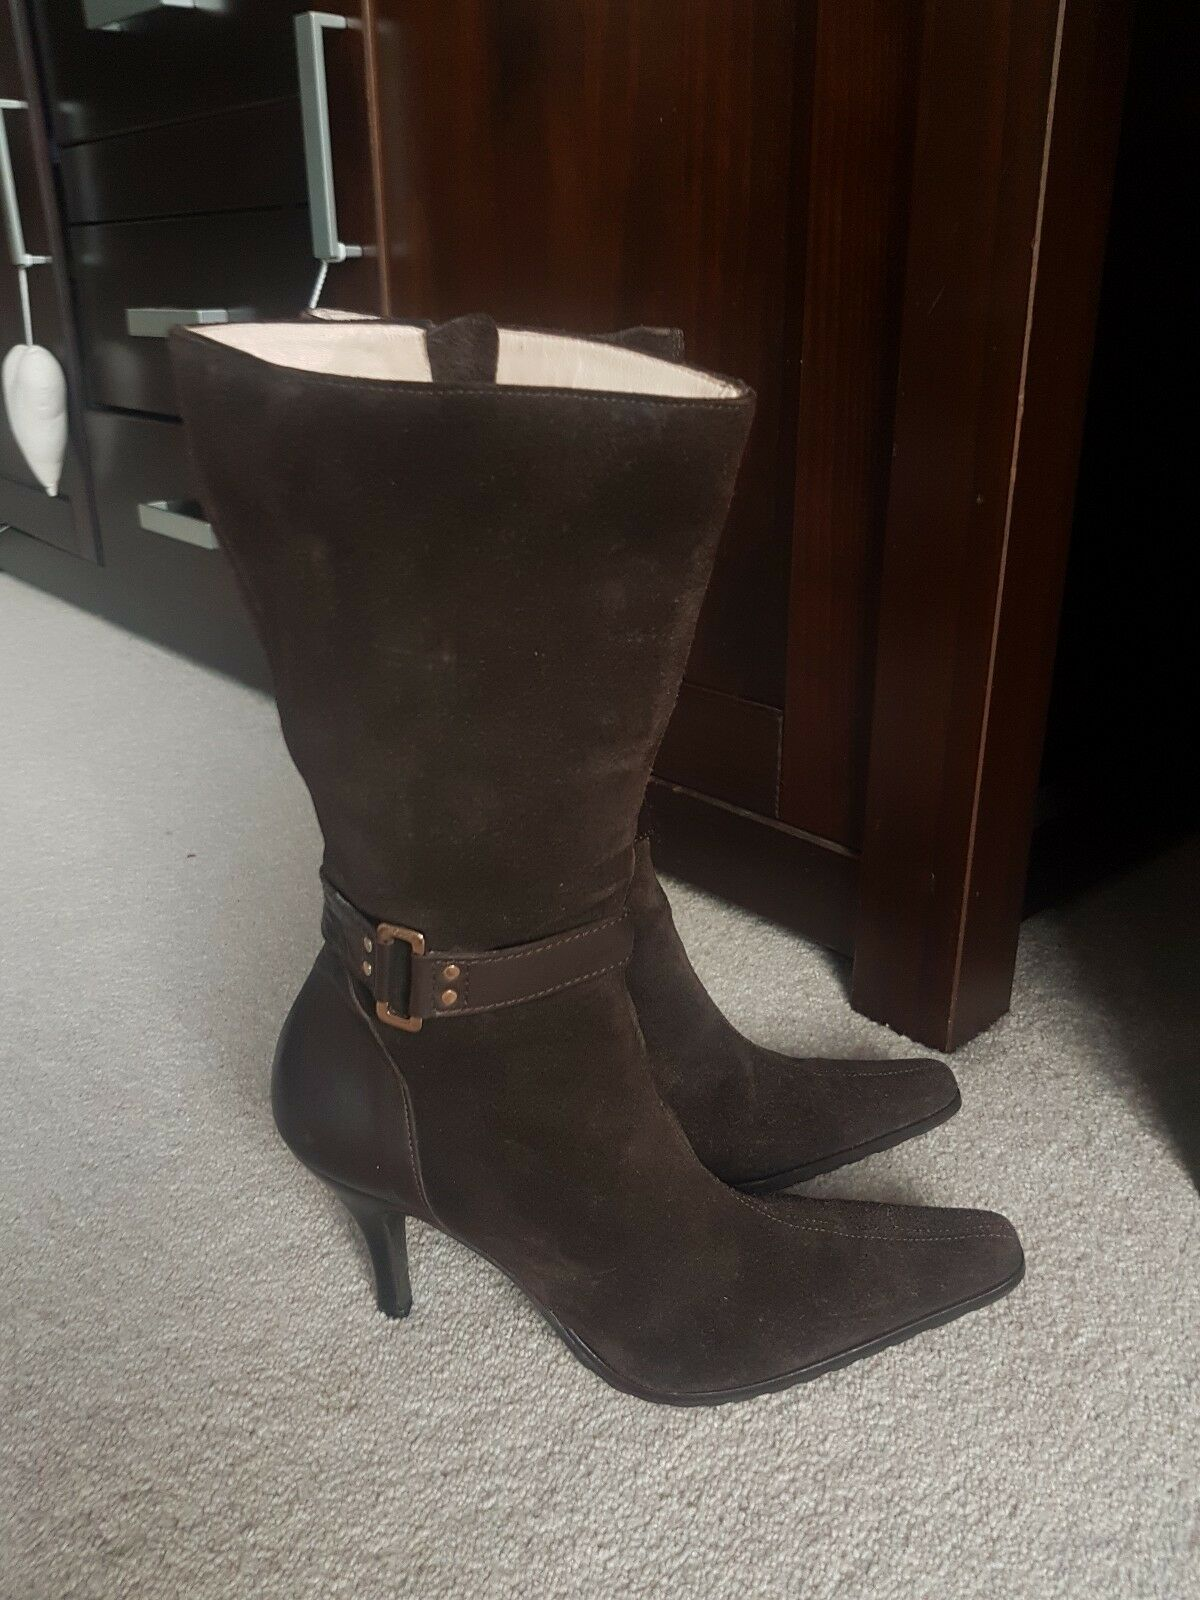 HOBBS SIZE 5 38 GORGEOUS BROWN SUEDE & LEATHER MID CALF HEELED BOOTSL@@K